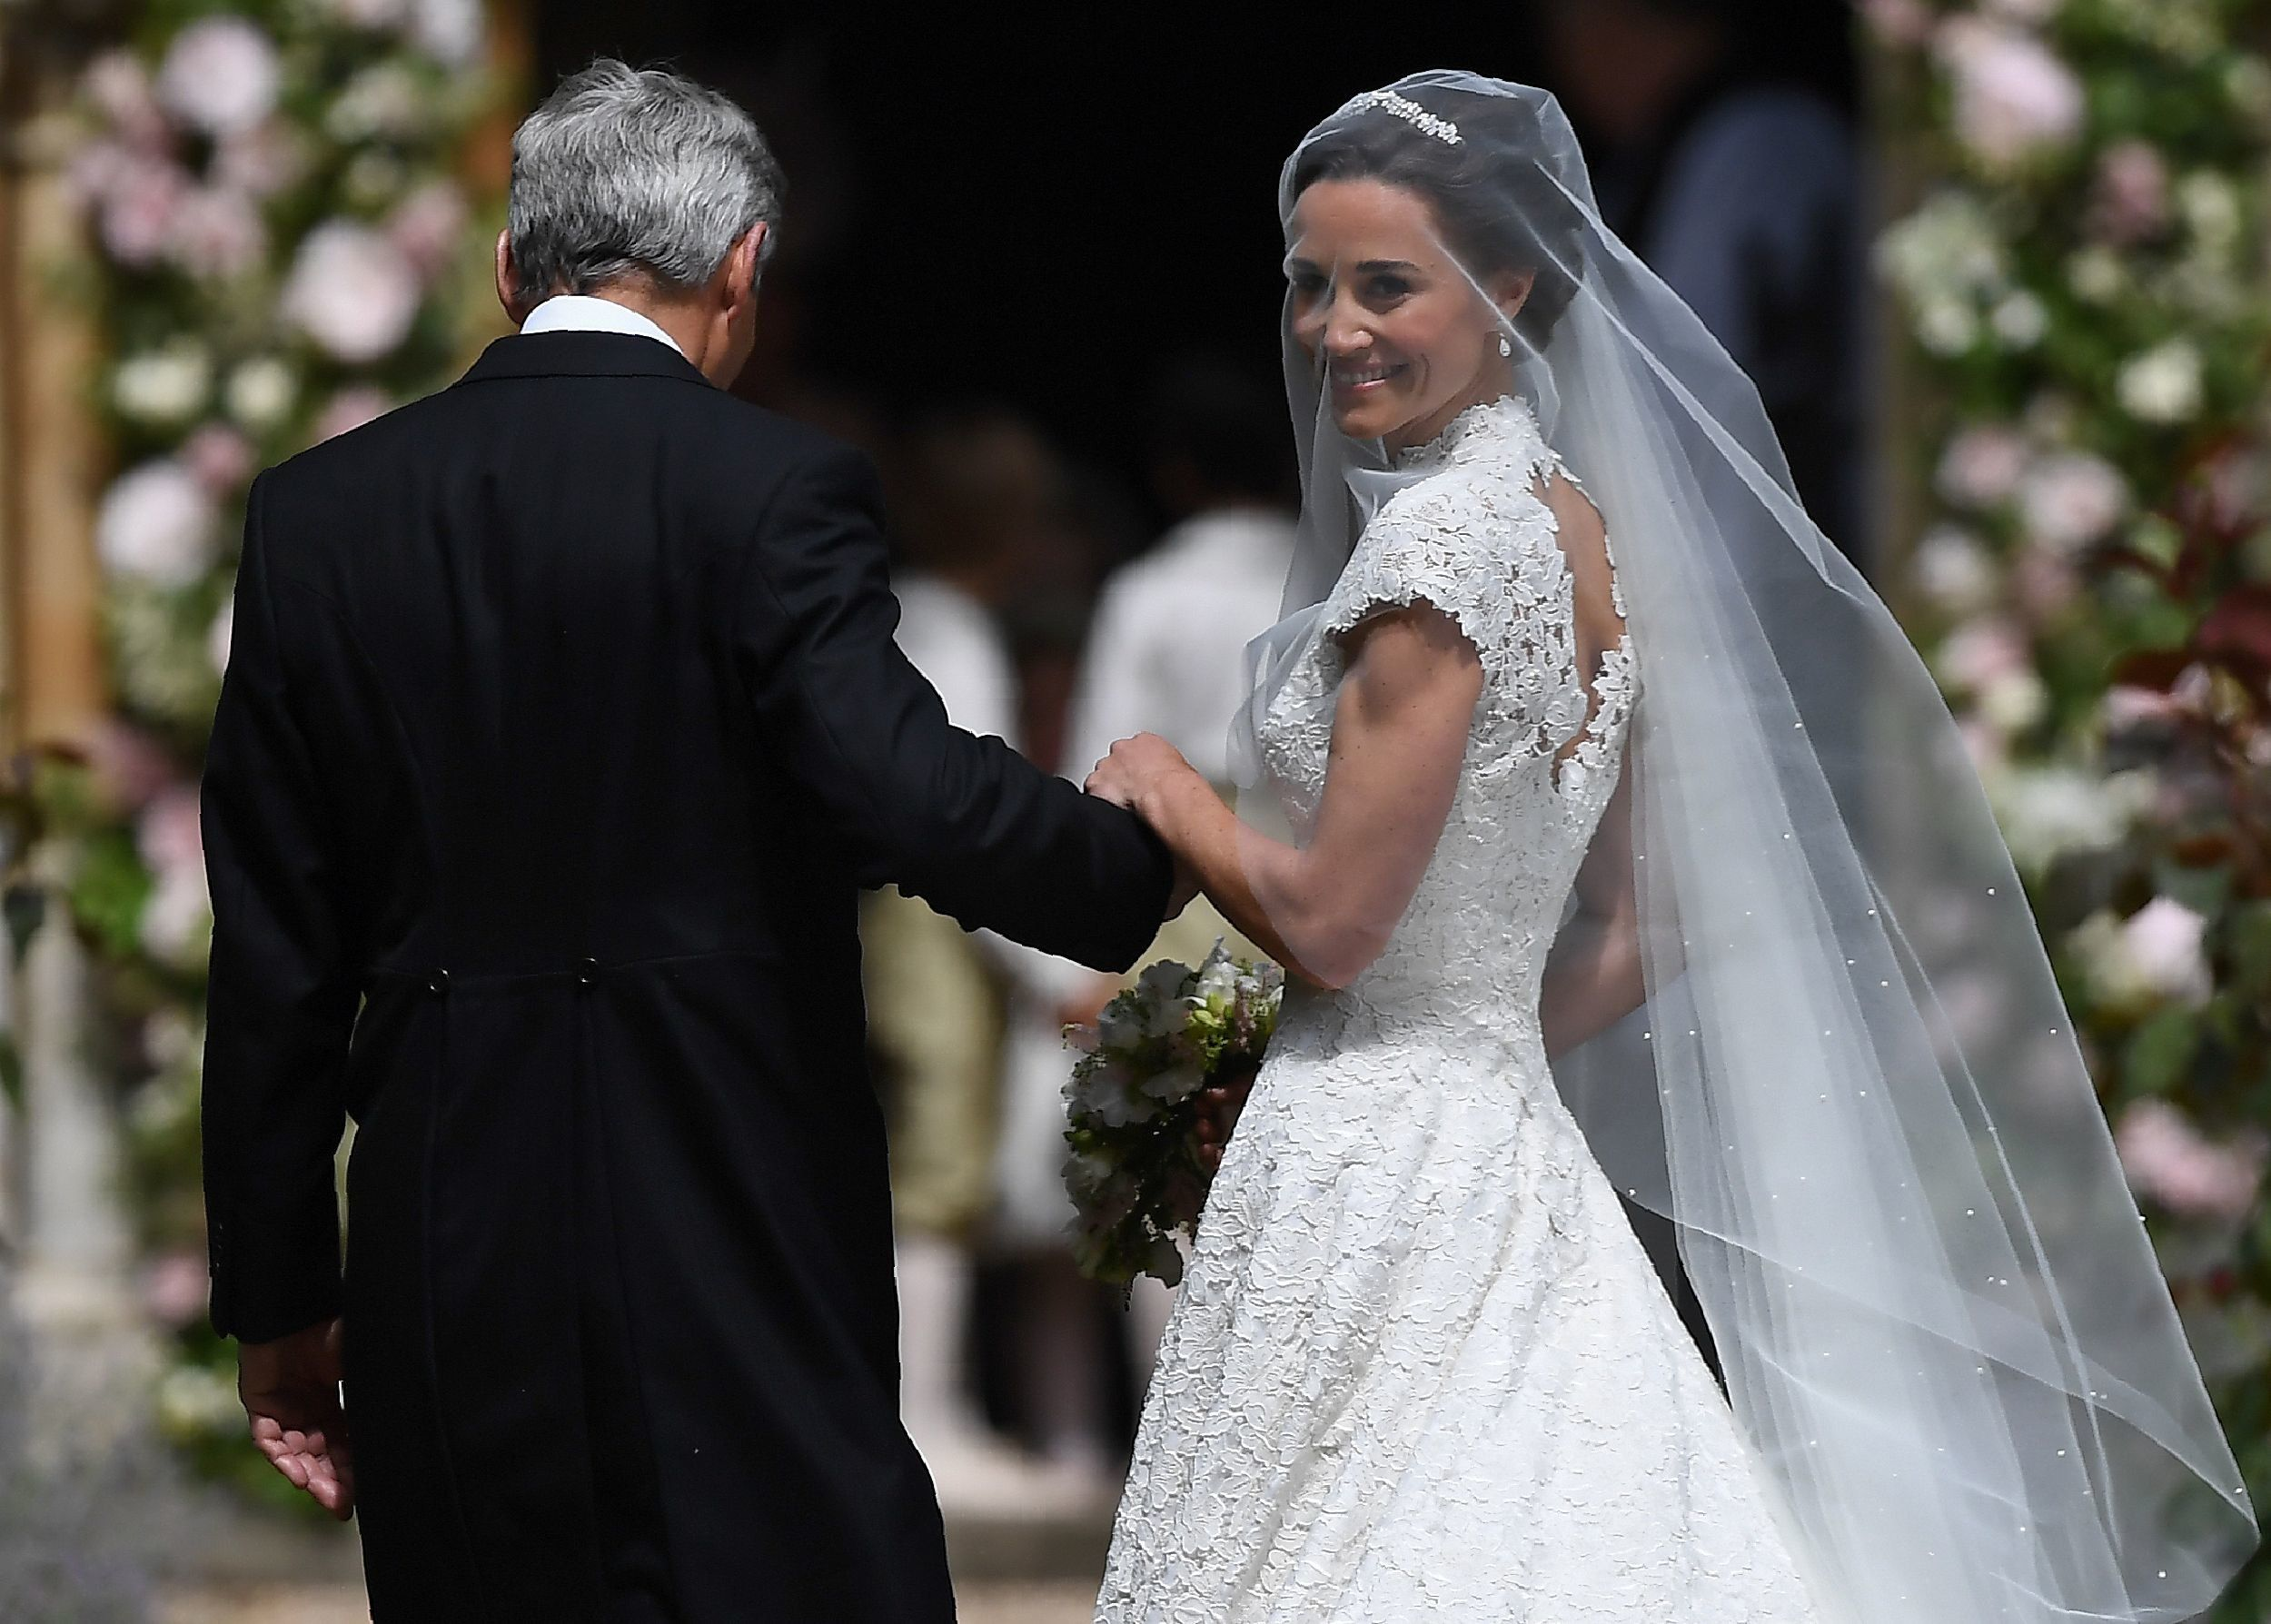 Pippa Middleton, (R) is escorted by her father Michael Middleton, as she arrives for her wedding to James Matthews at St Mark's Church in Englefield, west of London, on May 20, 2017. Pippa Middleton hit the headlines with a figure-hugging outfit at her sister Kate's wedding to Prince William but now the world-famous bridesmaid is becoming a bride herself. Once again, all eyes will be on her dress as the 33-year-old marries financier James Matthews on Saturday at a lavish society wedding where William and Kate's children will play starring roles. / AFP PHOTO / POOL / Justin TALLIS        (Photo credit should read JUSTIN TALLIS/AFP/Getty Images)